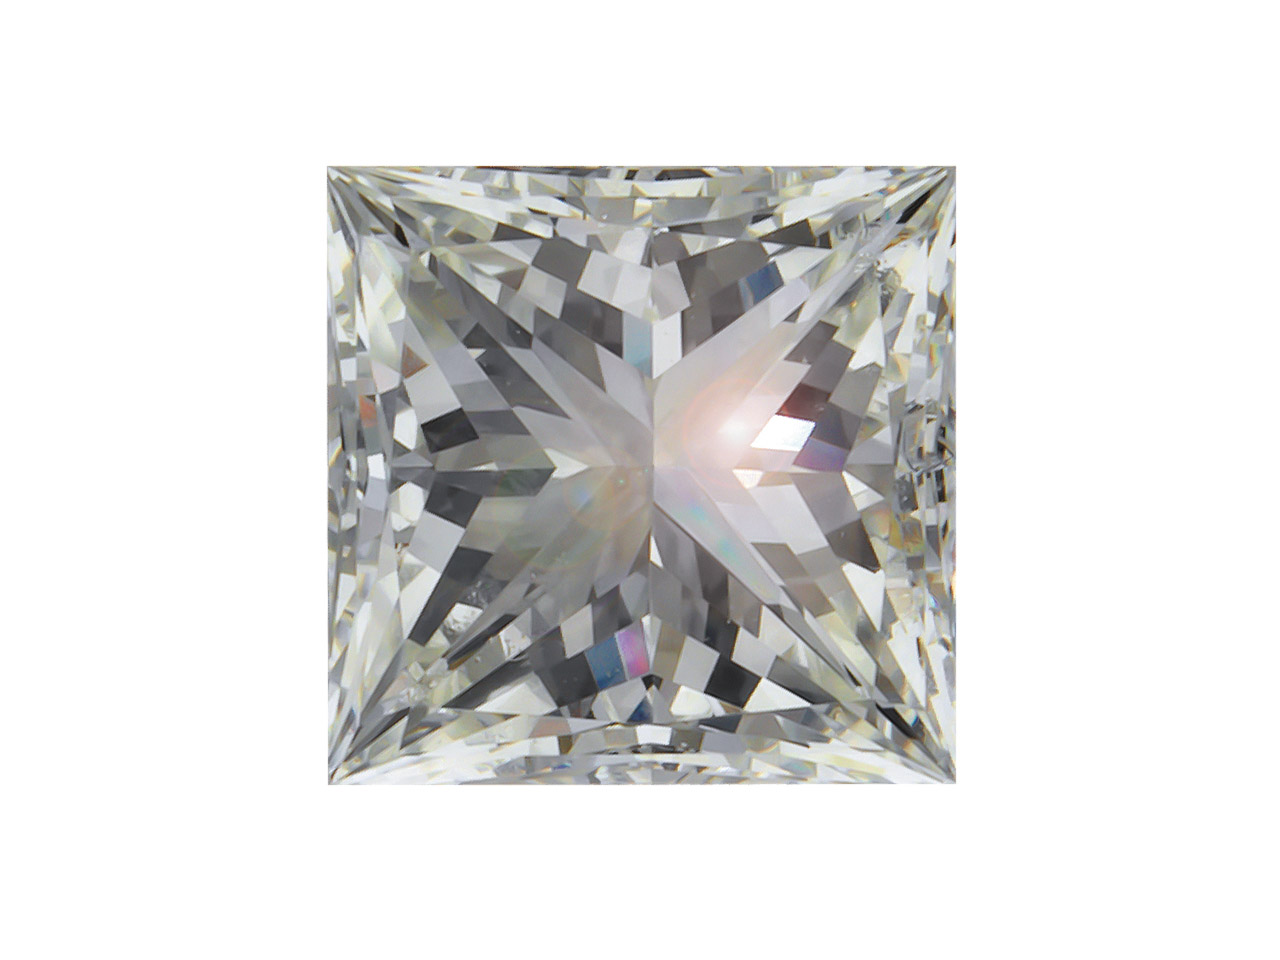 Diamond, Princess, H-i/p2, 15pt/3mm